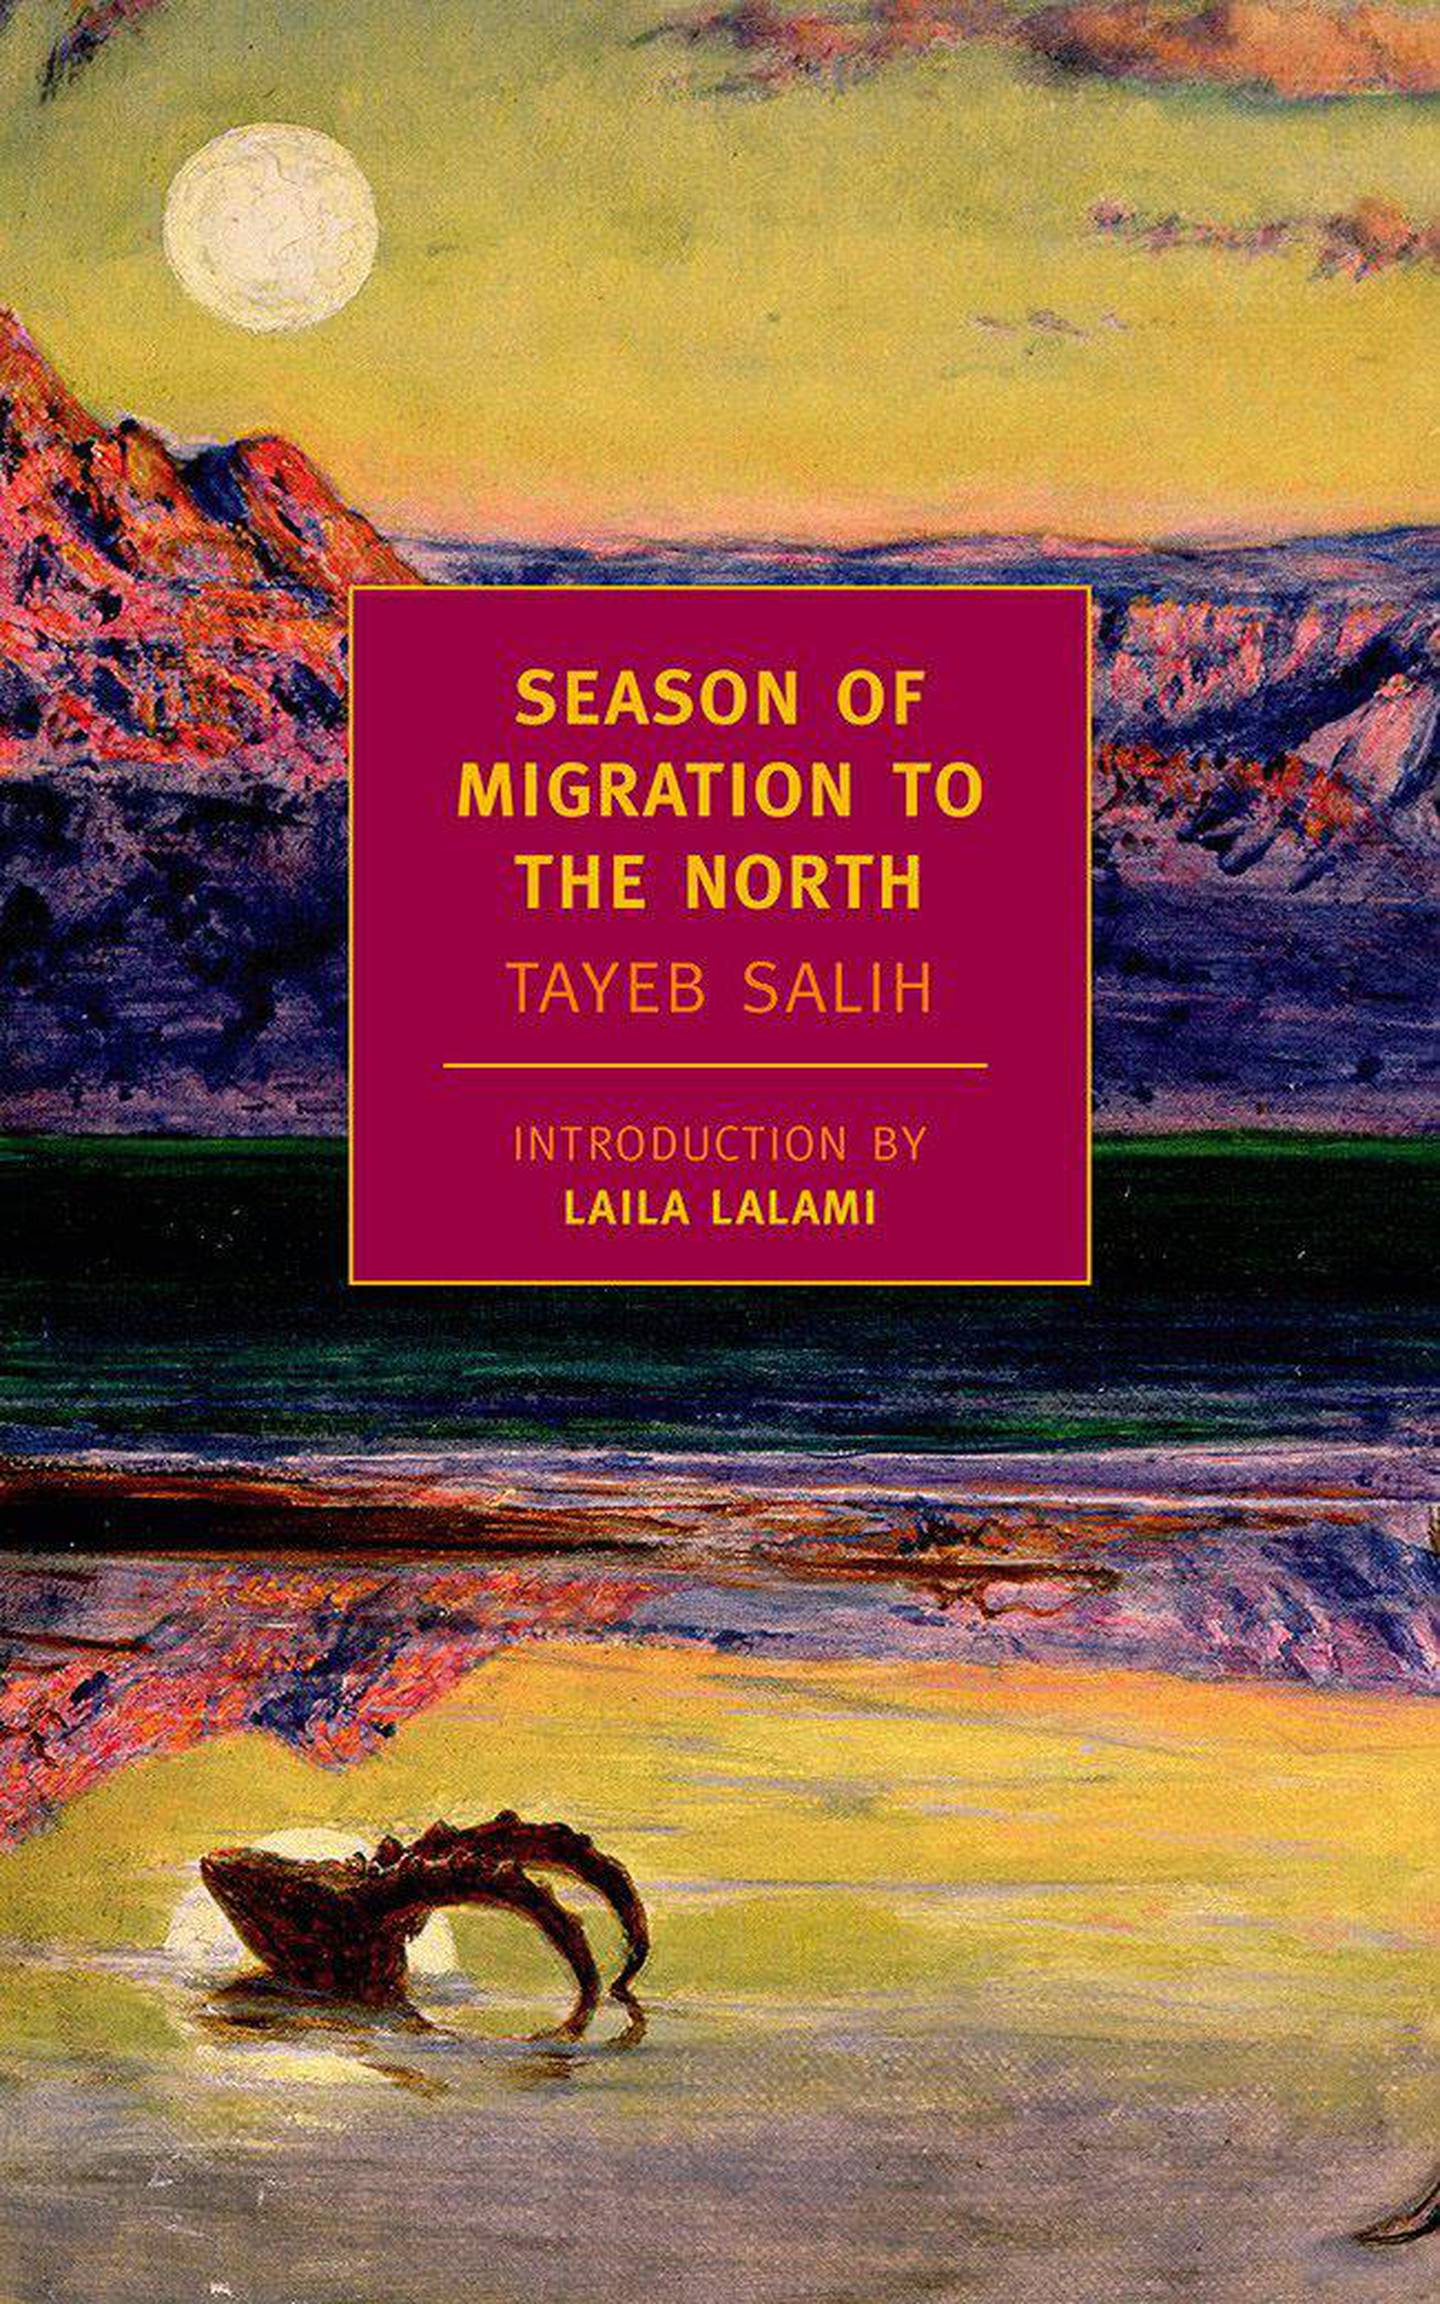 Season of Migration to the North by Tayeb Salih (1969)